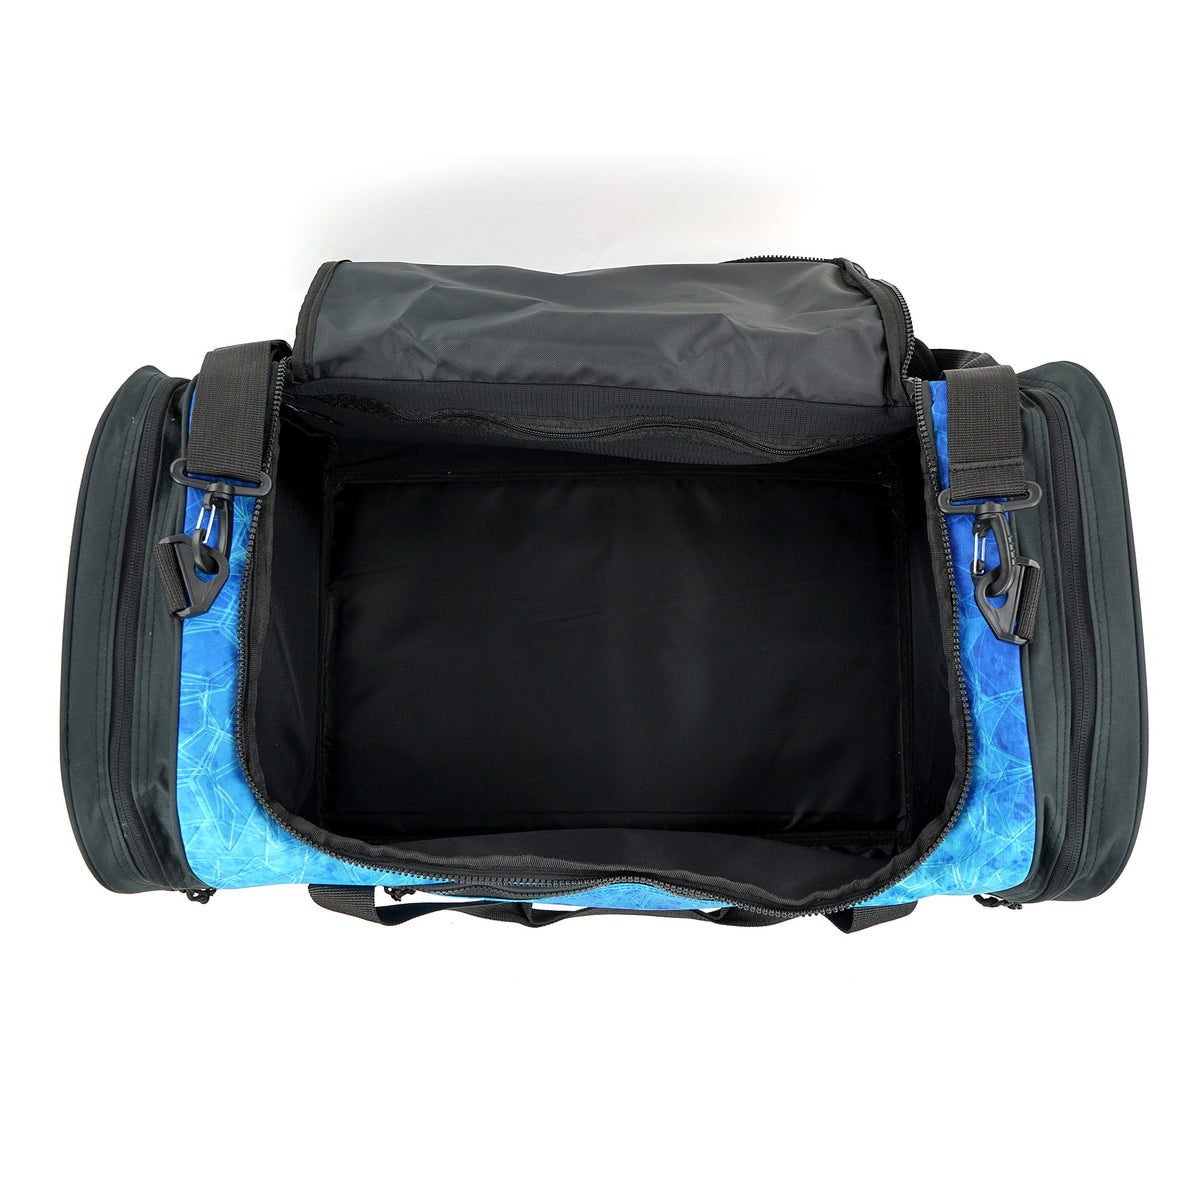 Pelagic Duffel Bag Big Image - 6